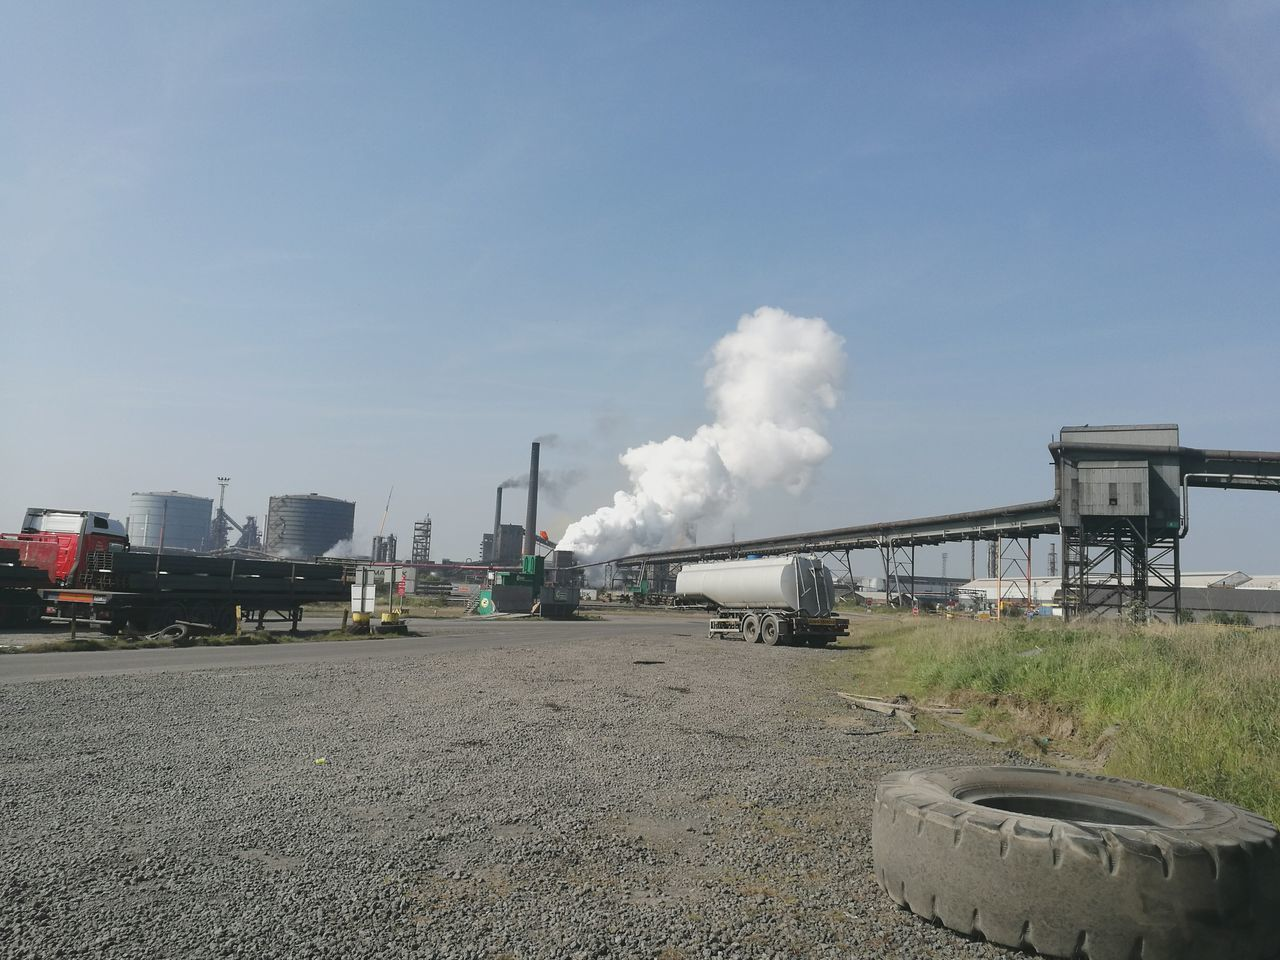 industry, smoke - physical structure, pollution, factory, air pollution, emitting, smoke stack, environmental issues, day, built structure, sky, chimney, fumes, environment, steam train, train - vehicle, outdoors, architecture, no people, locomotive, power station